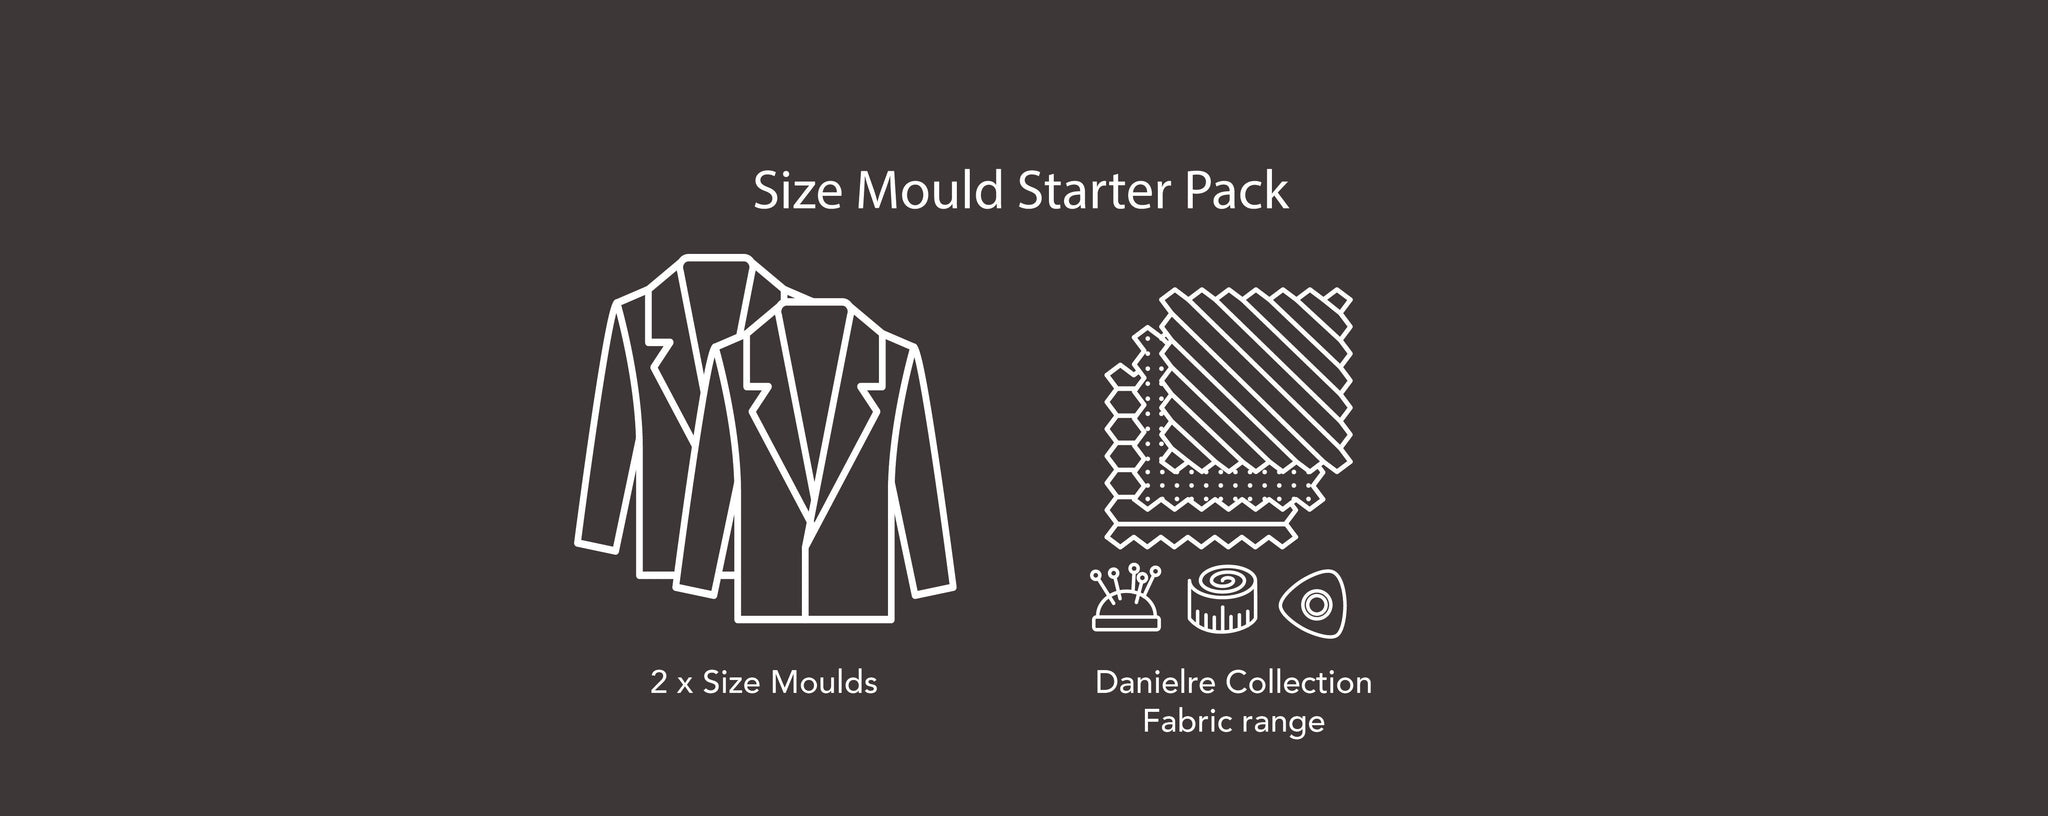 Size Mould Starter Pack